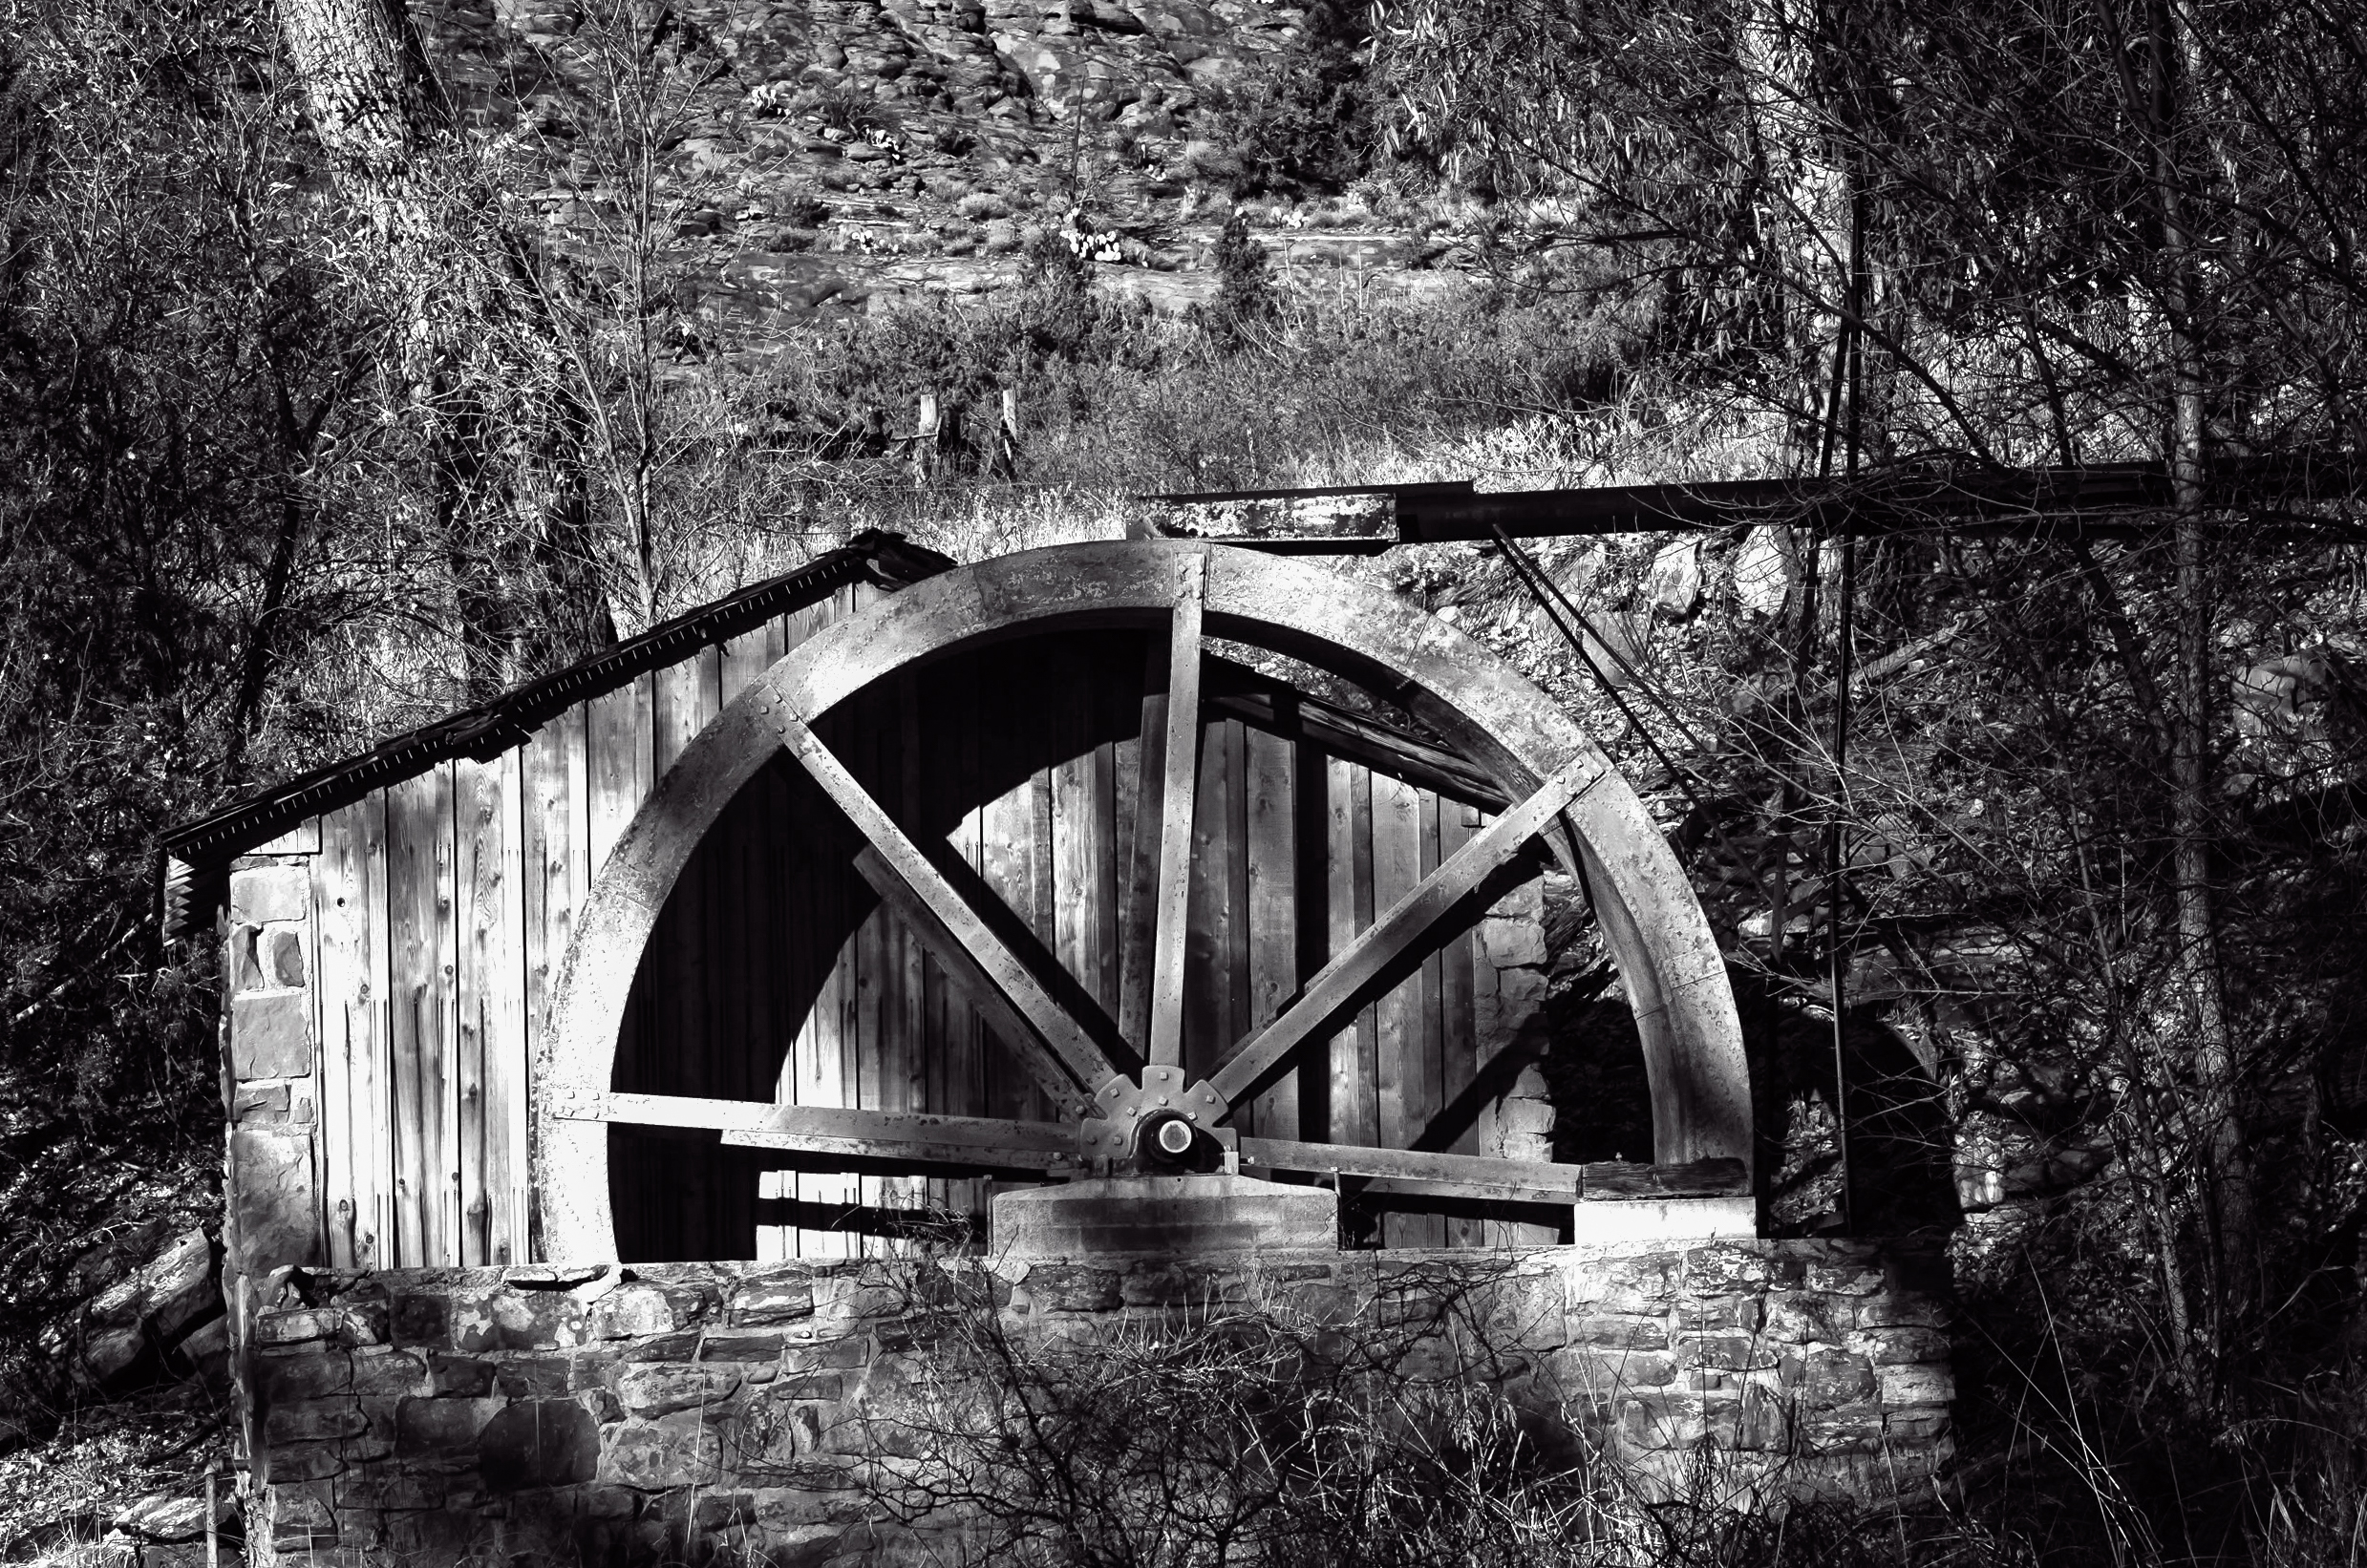 Sedona Water Wheel